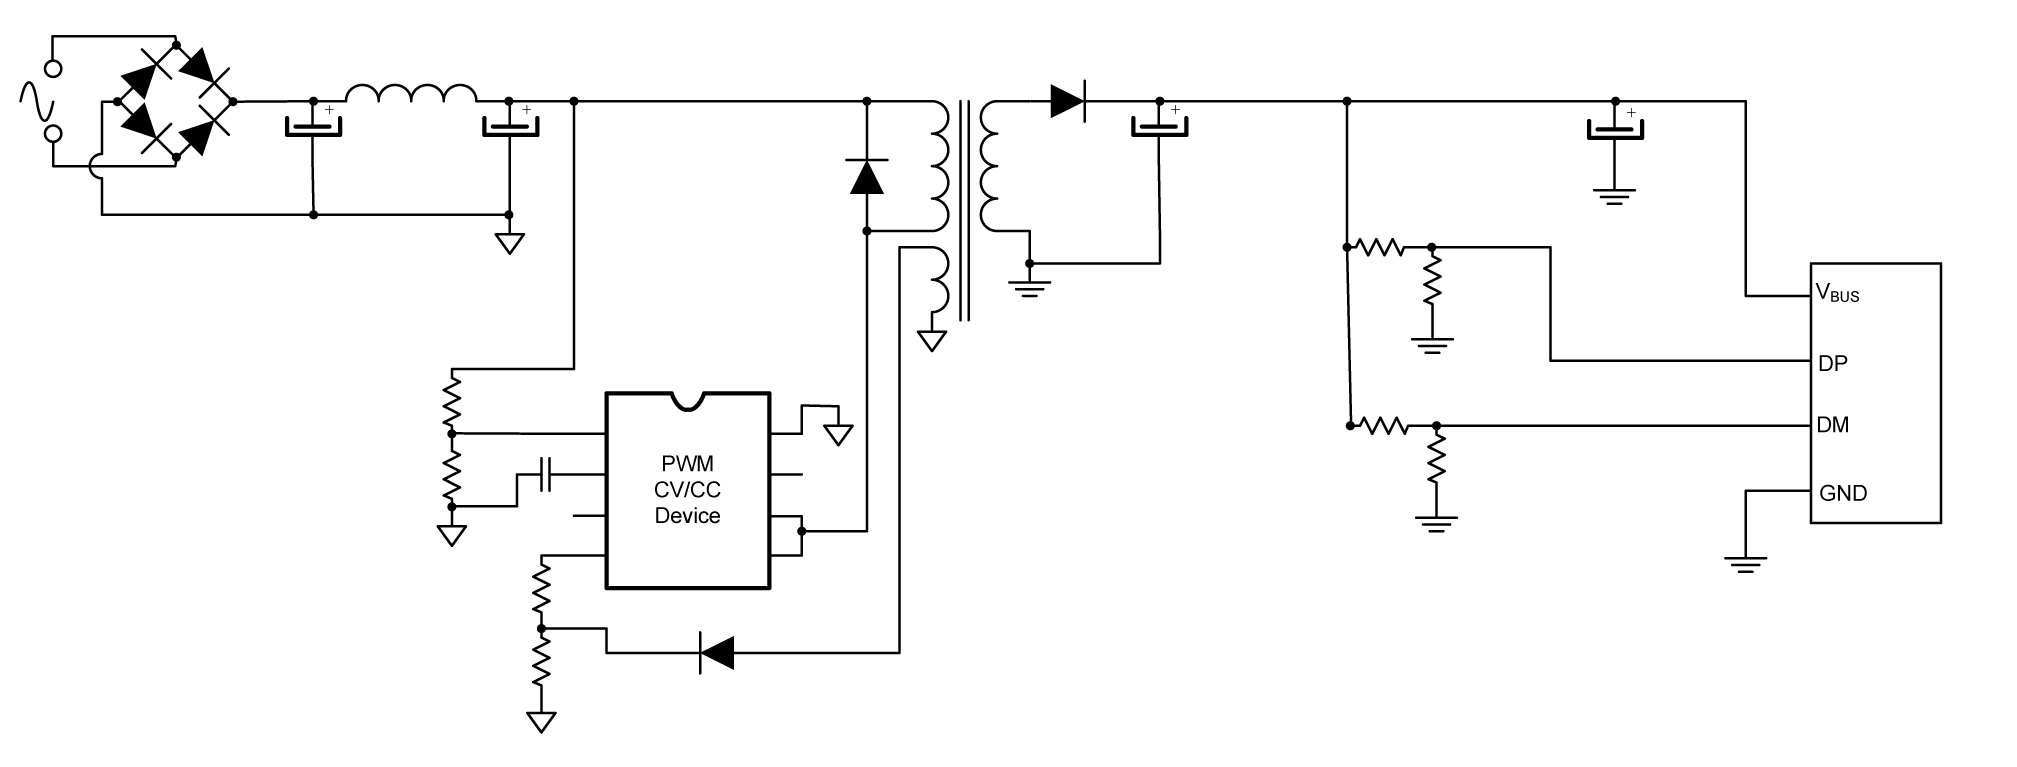 12V Usb Charger Wiring Diagram | Wiring Library - Micro Usb Battery Charger Wiring Diagram